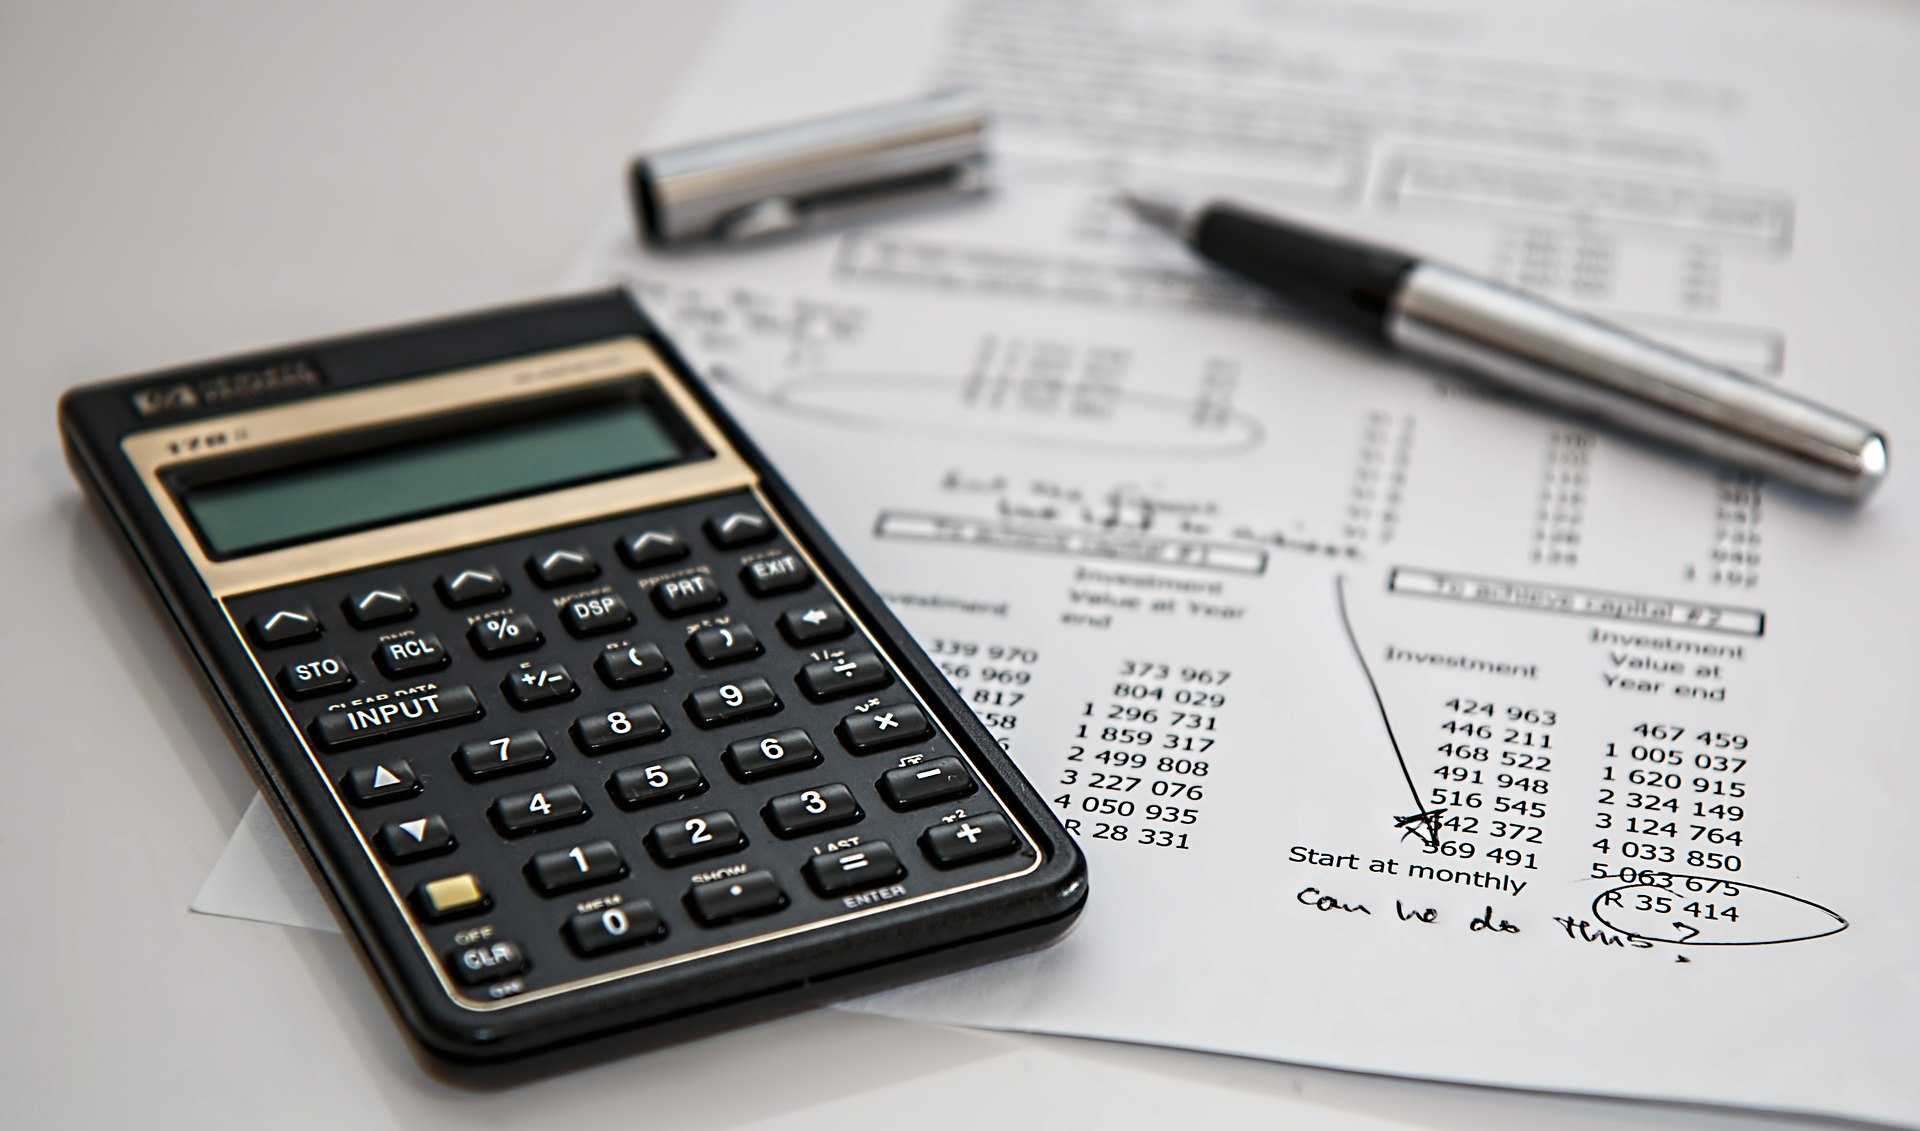 Calculator with calculations on paper